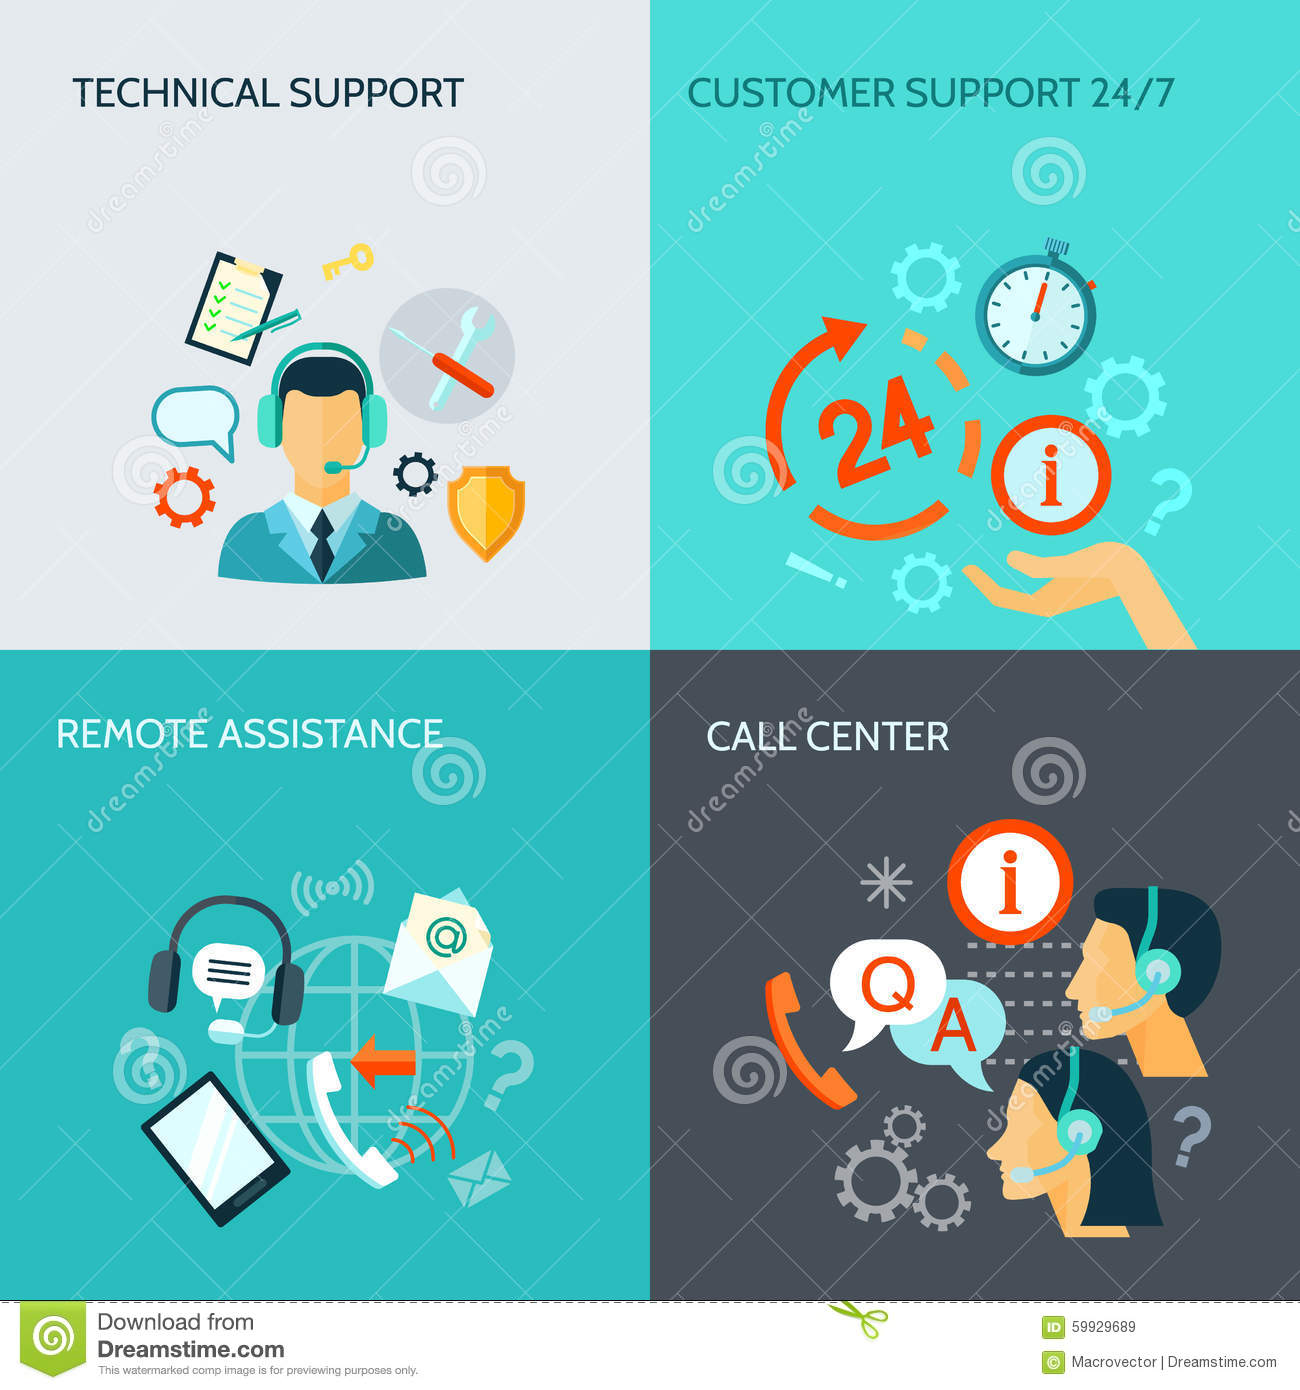 Remote Assistance And Technical Support Banners Stock Vector  Illustration of icons elements